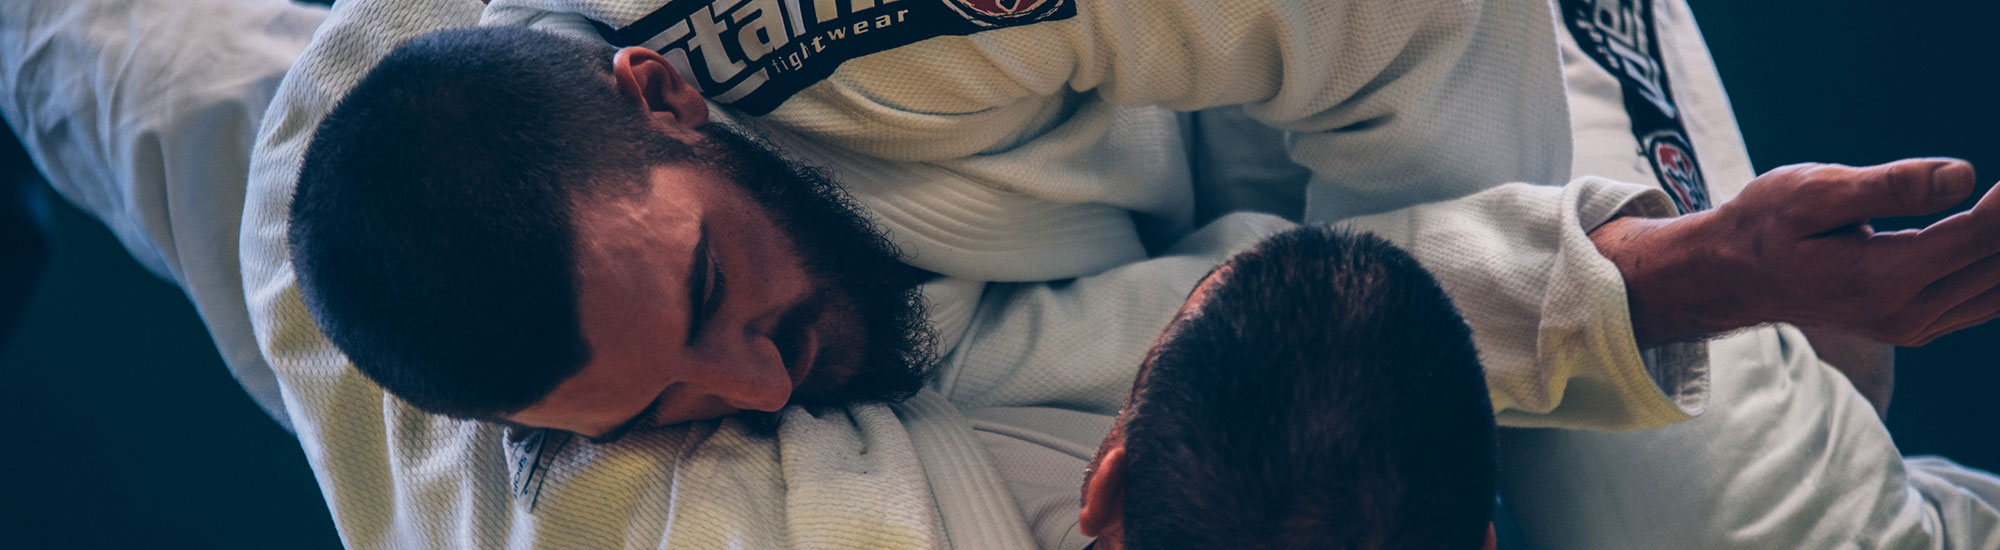 brazilian jiu jitsu - Photo Gallery